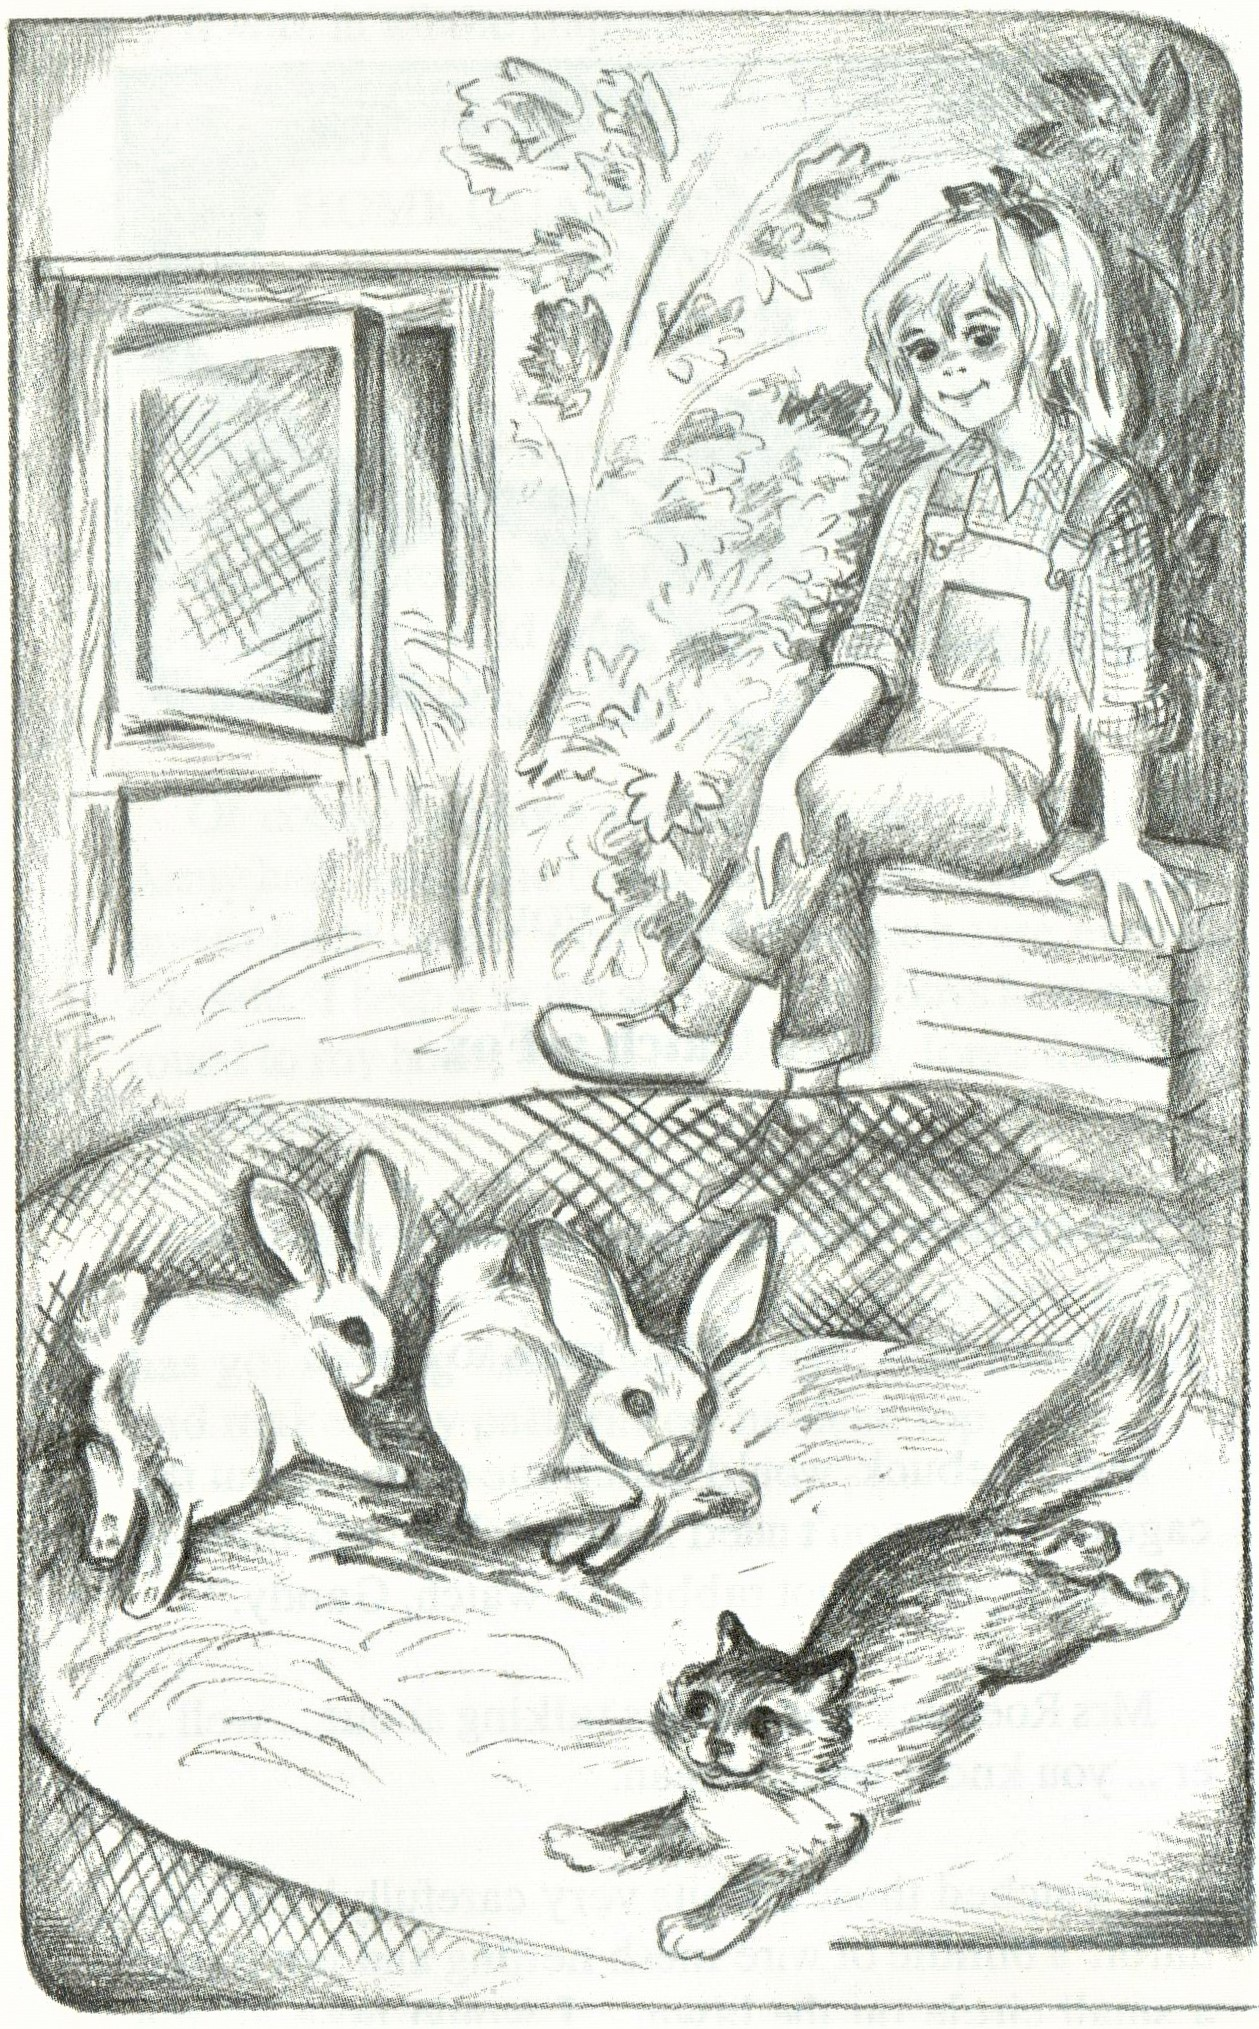 Gandy Lande, Candy with the rabbits